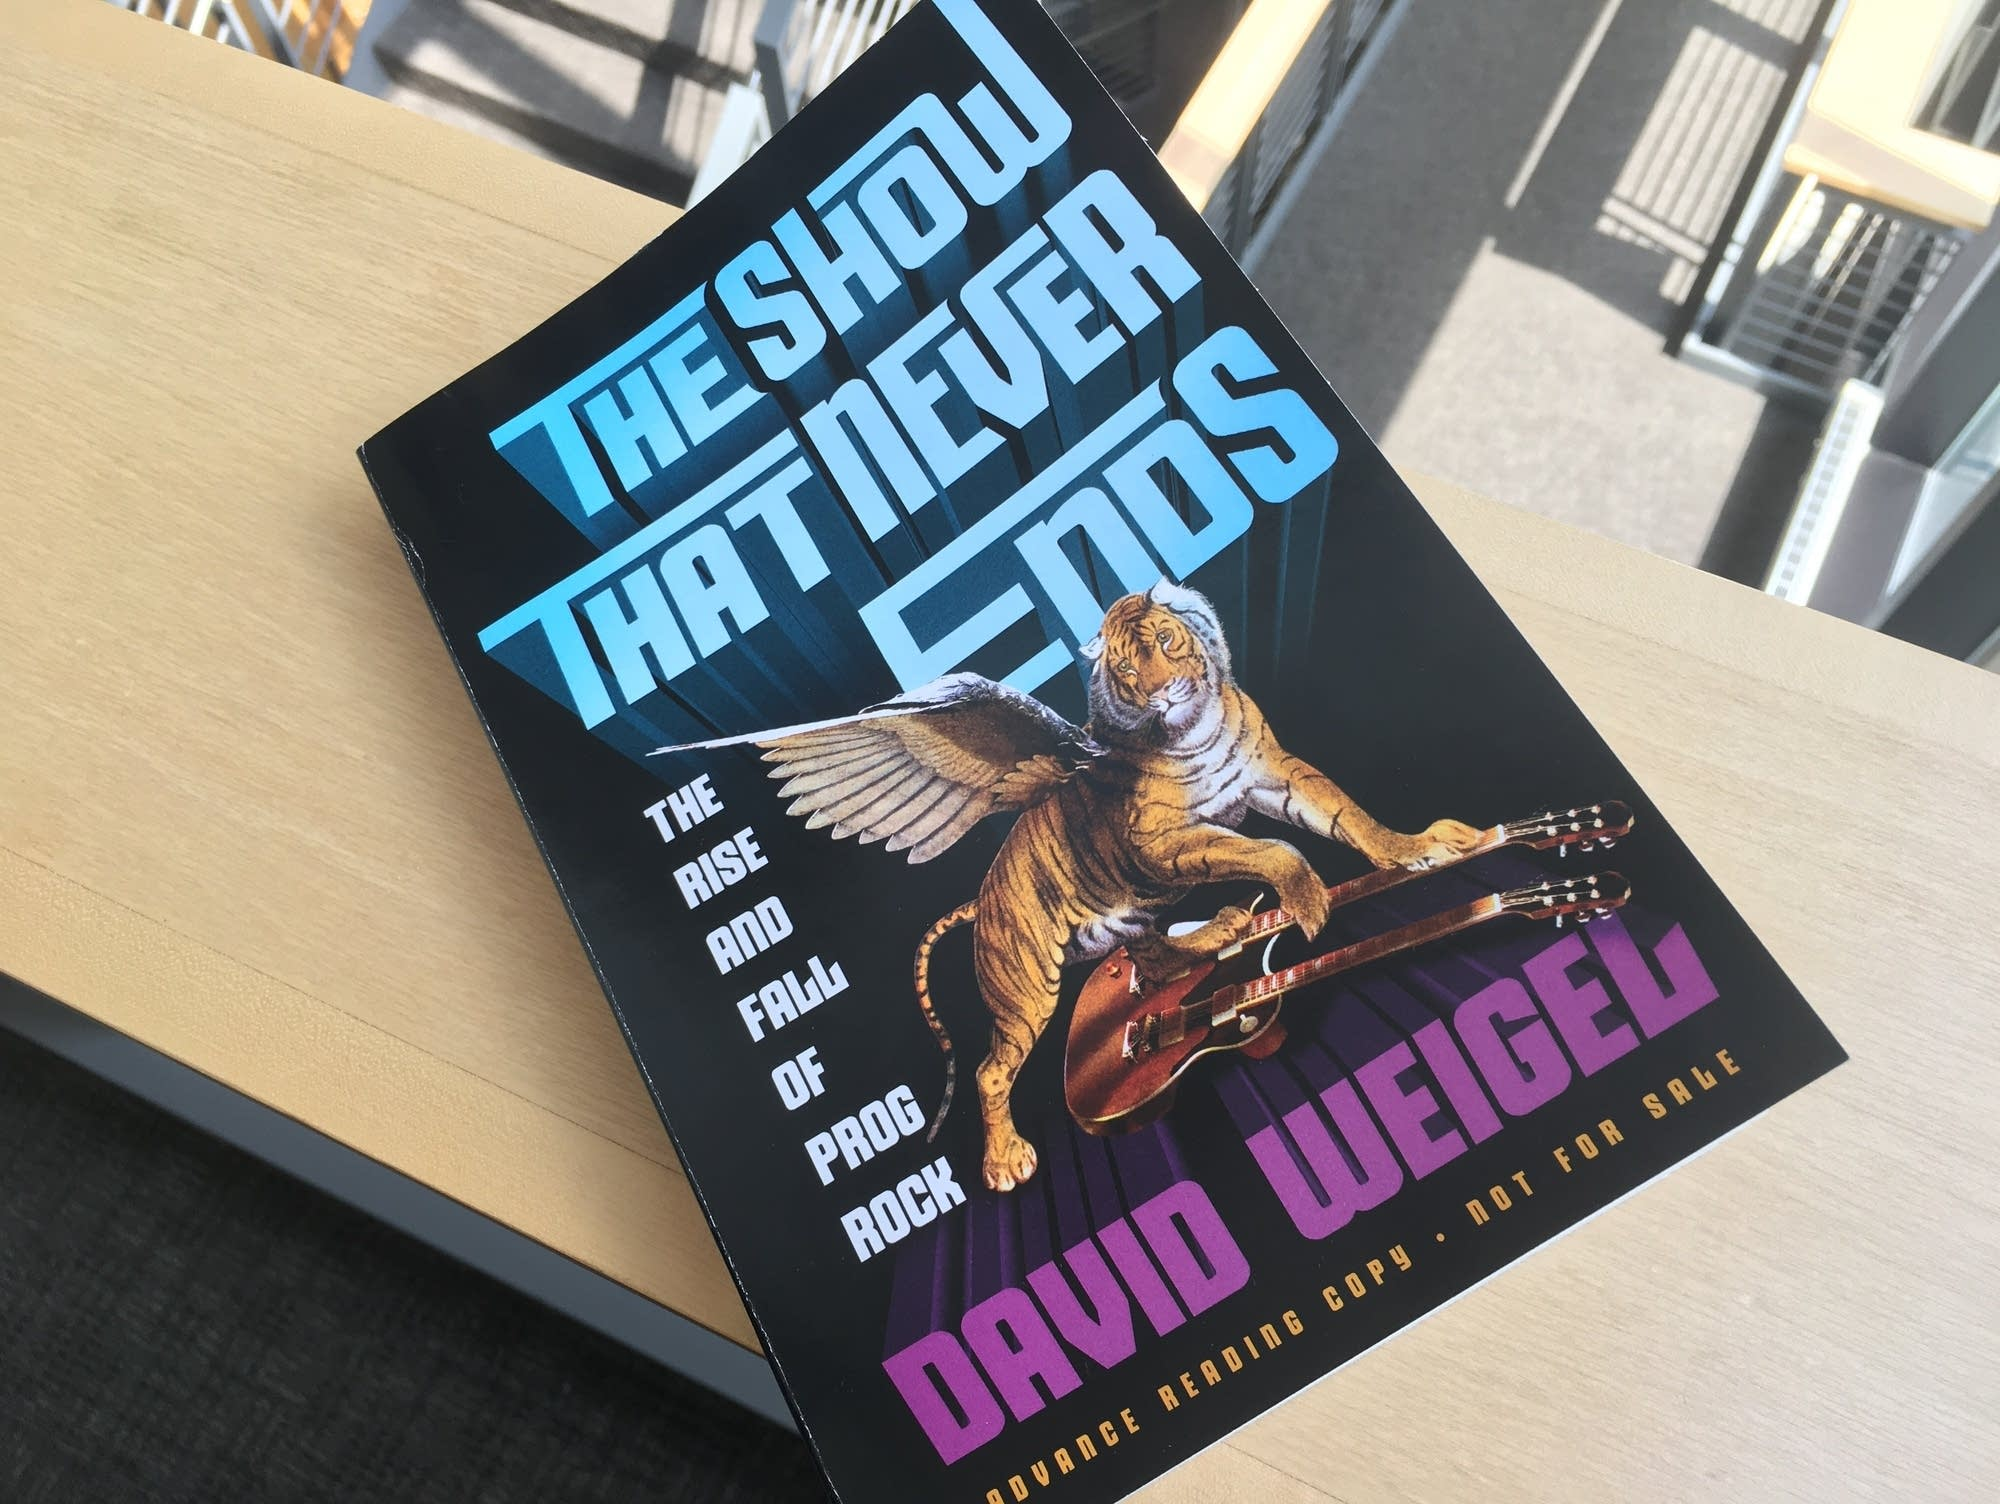 David Weigel's 'The Show That Never Ends'